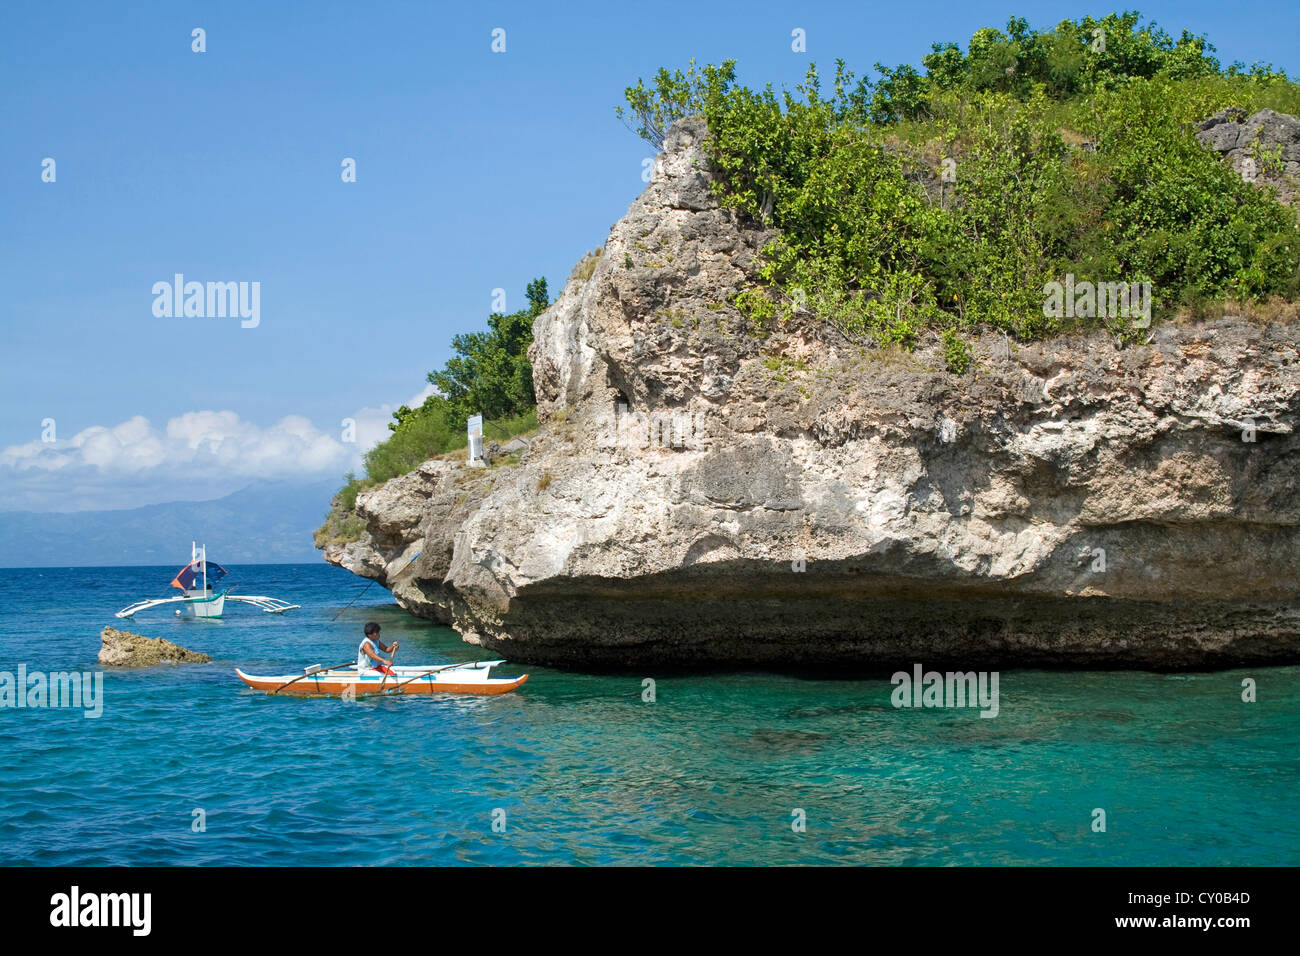 Fishing boat off Pescador Island, well-known dive site and marine park, Moalboal, Cebu, Philippines, Indo-Pacific - Stock Image